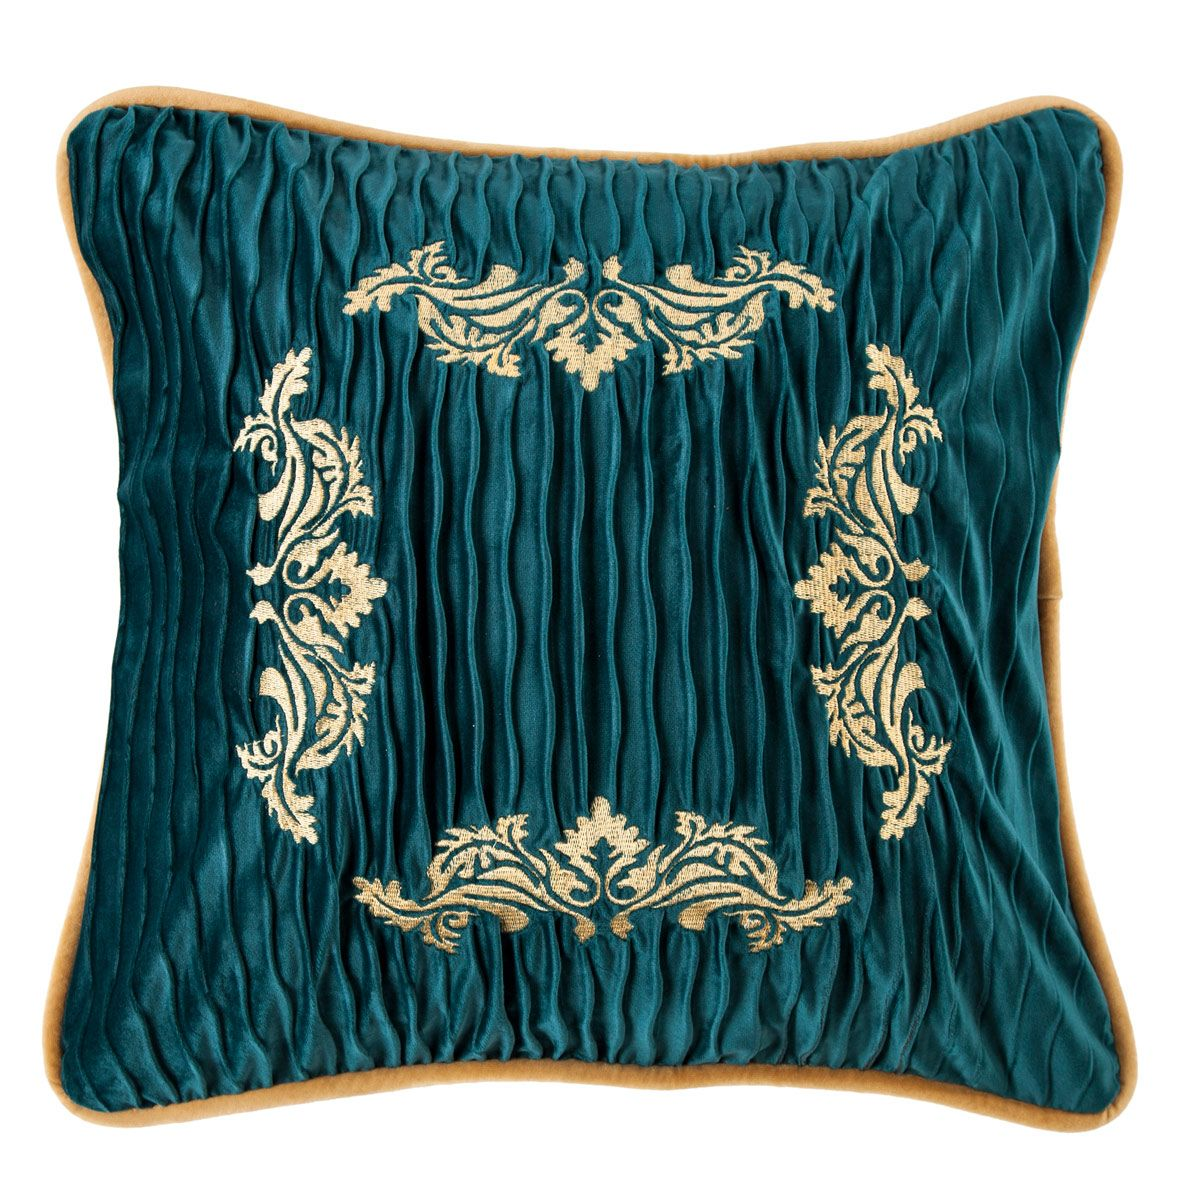 Loretta Velvet Embroidery Pillow